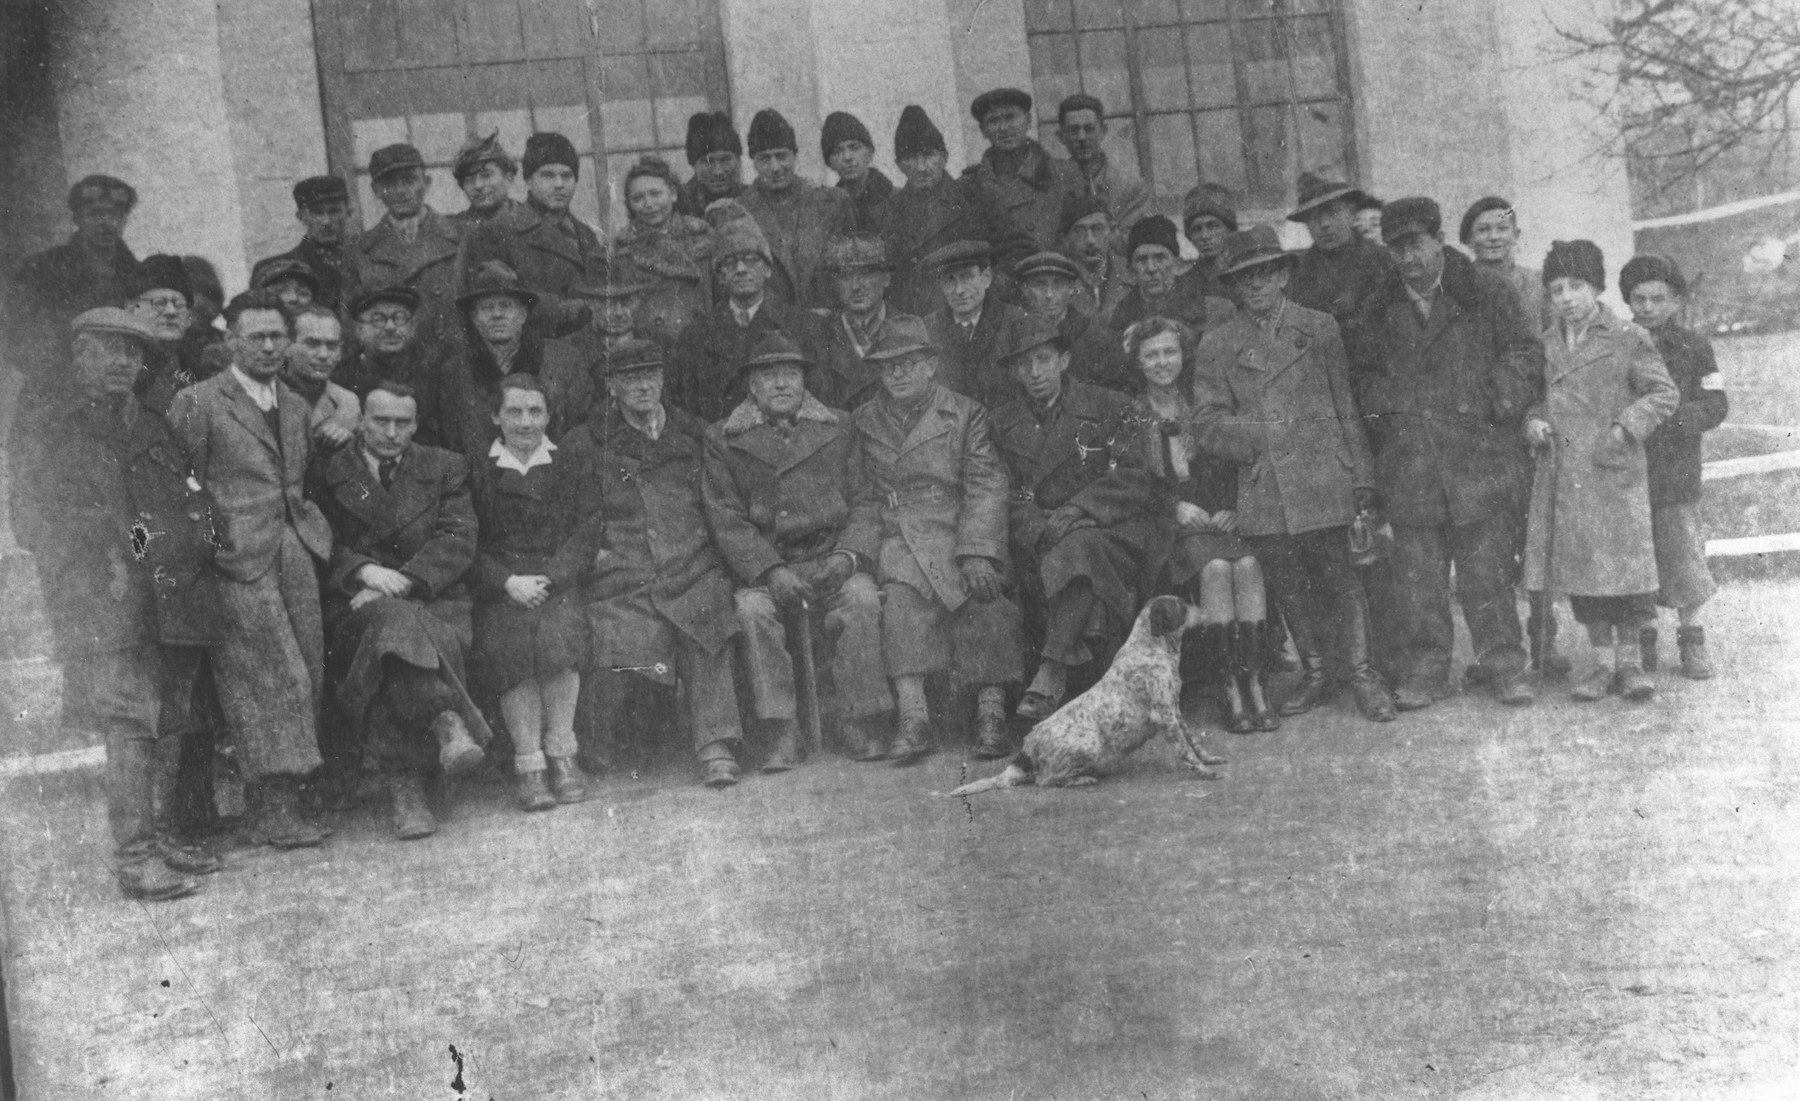 Group portrait of Jewish forced laborers at the Turnatoria, the machine shop established by Siegfried Jagendorf in the Mogilev-Podolskiy foundry.